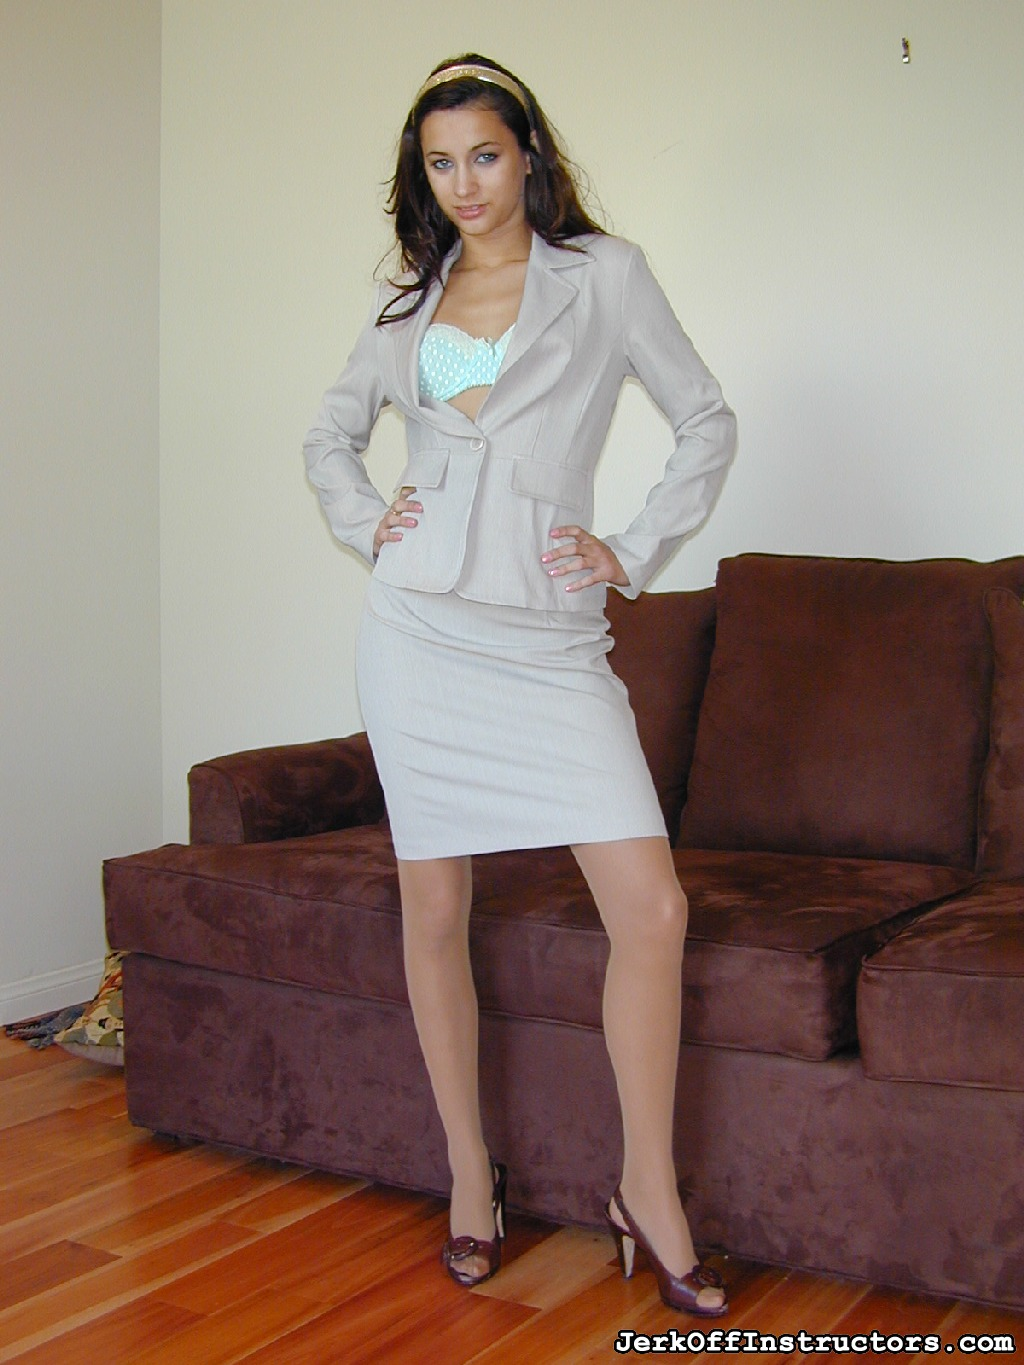 Georgia jones  suit  georgia jones  in a tight business suit nude sheer to waist pantyhose with lots of sexual office games to set you off. Georgia Jones' in a tight business suit, nude sheer to waist pantyhose with lots of sexual office games to set you off!